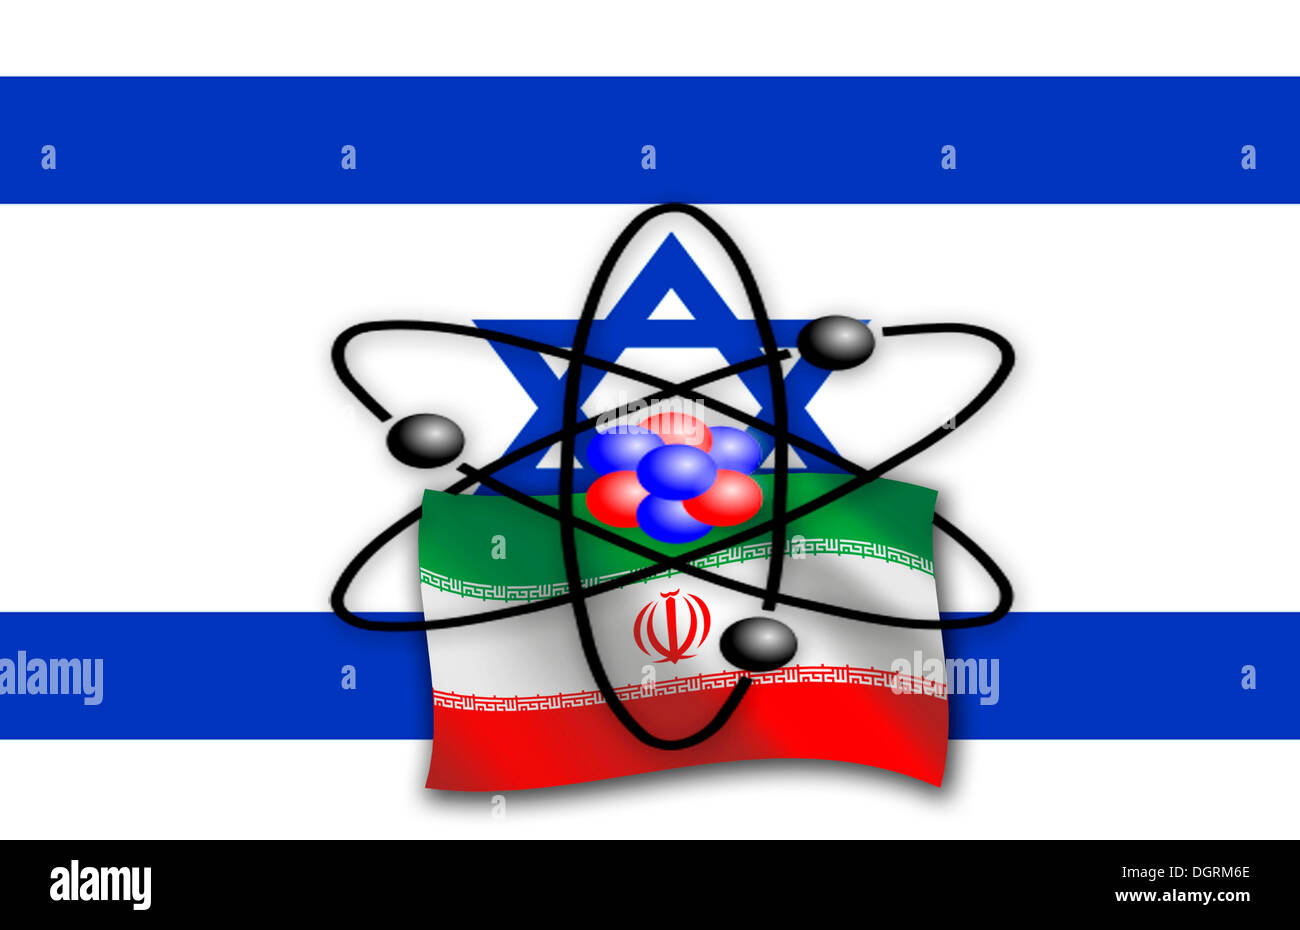 Symbolic image, nuclear dispute between the Iran, Israel and the United Nations, international community, illustration - Stock Image